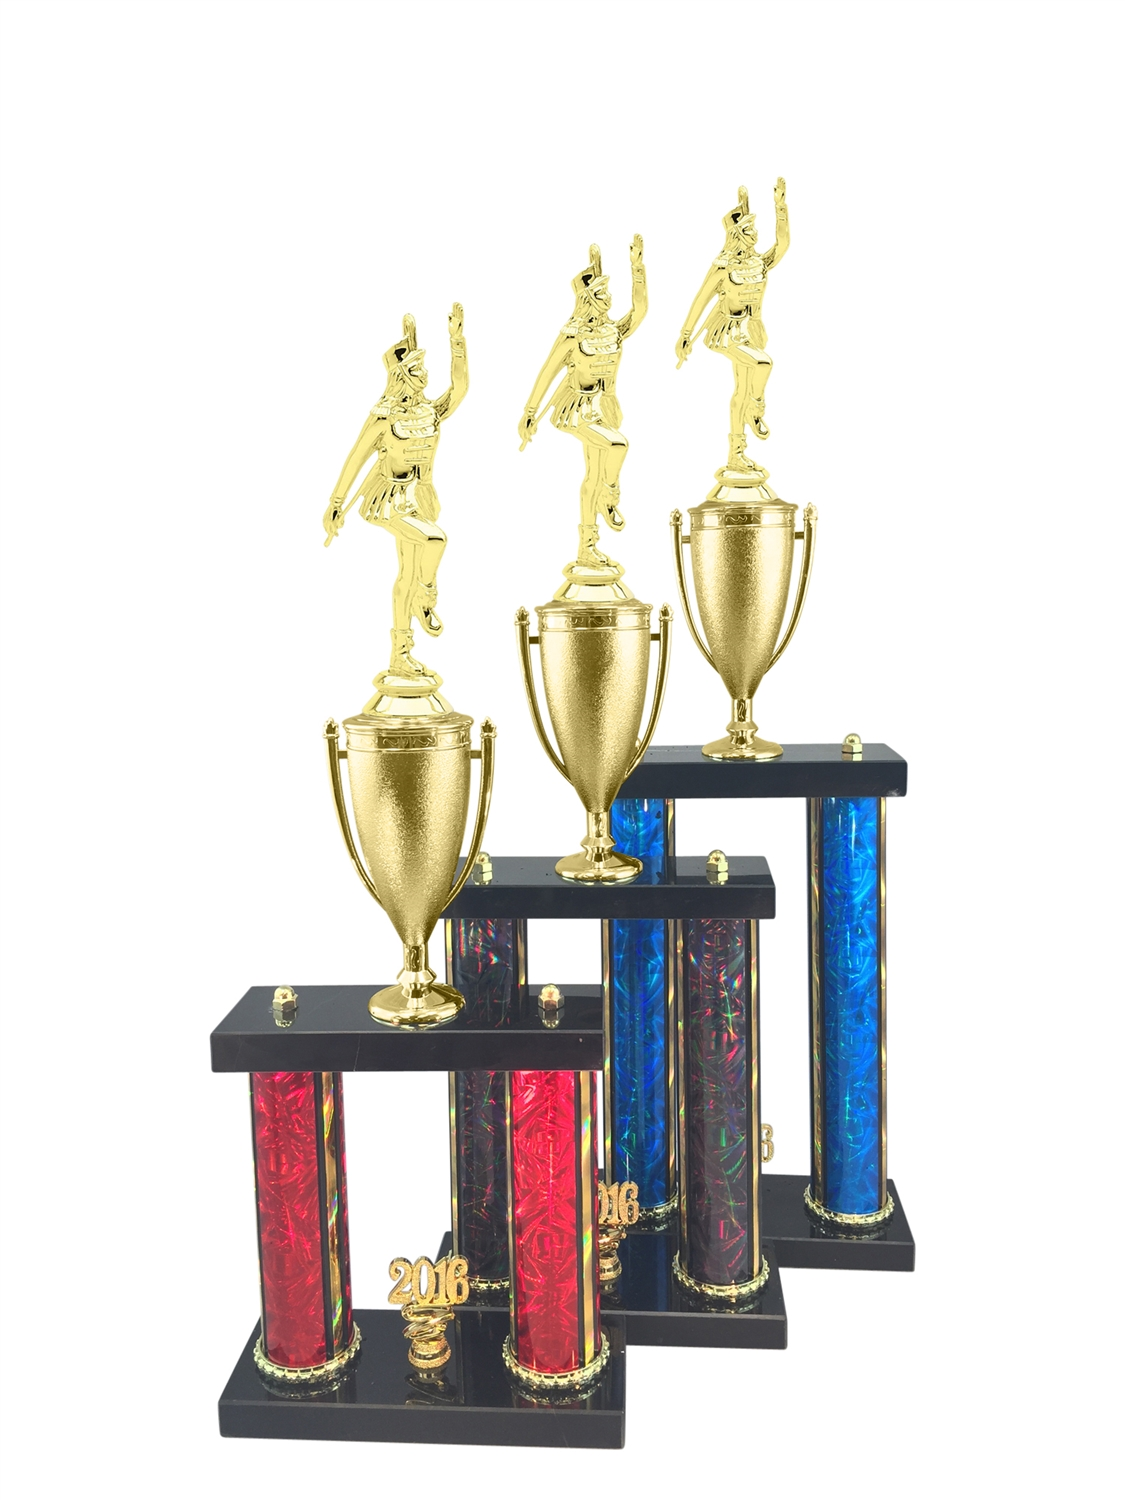 Majorette Trophy Available in 11 Color & 3 Size Options